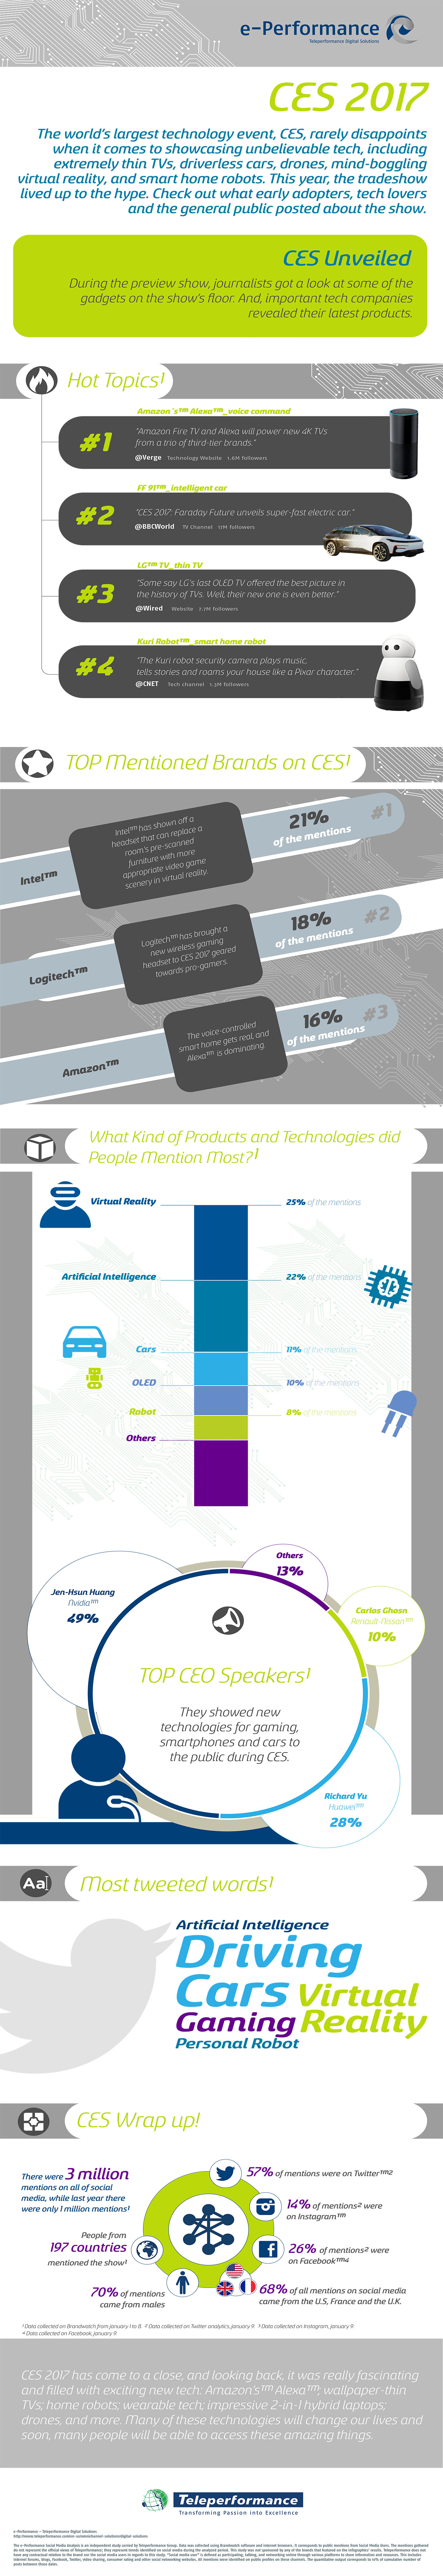 infographic-CES-2017